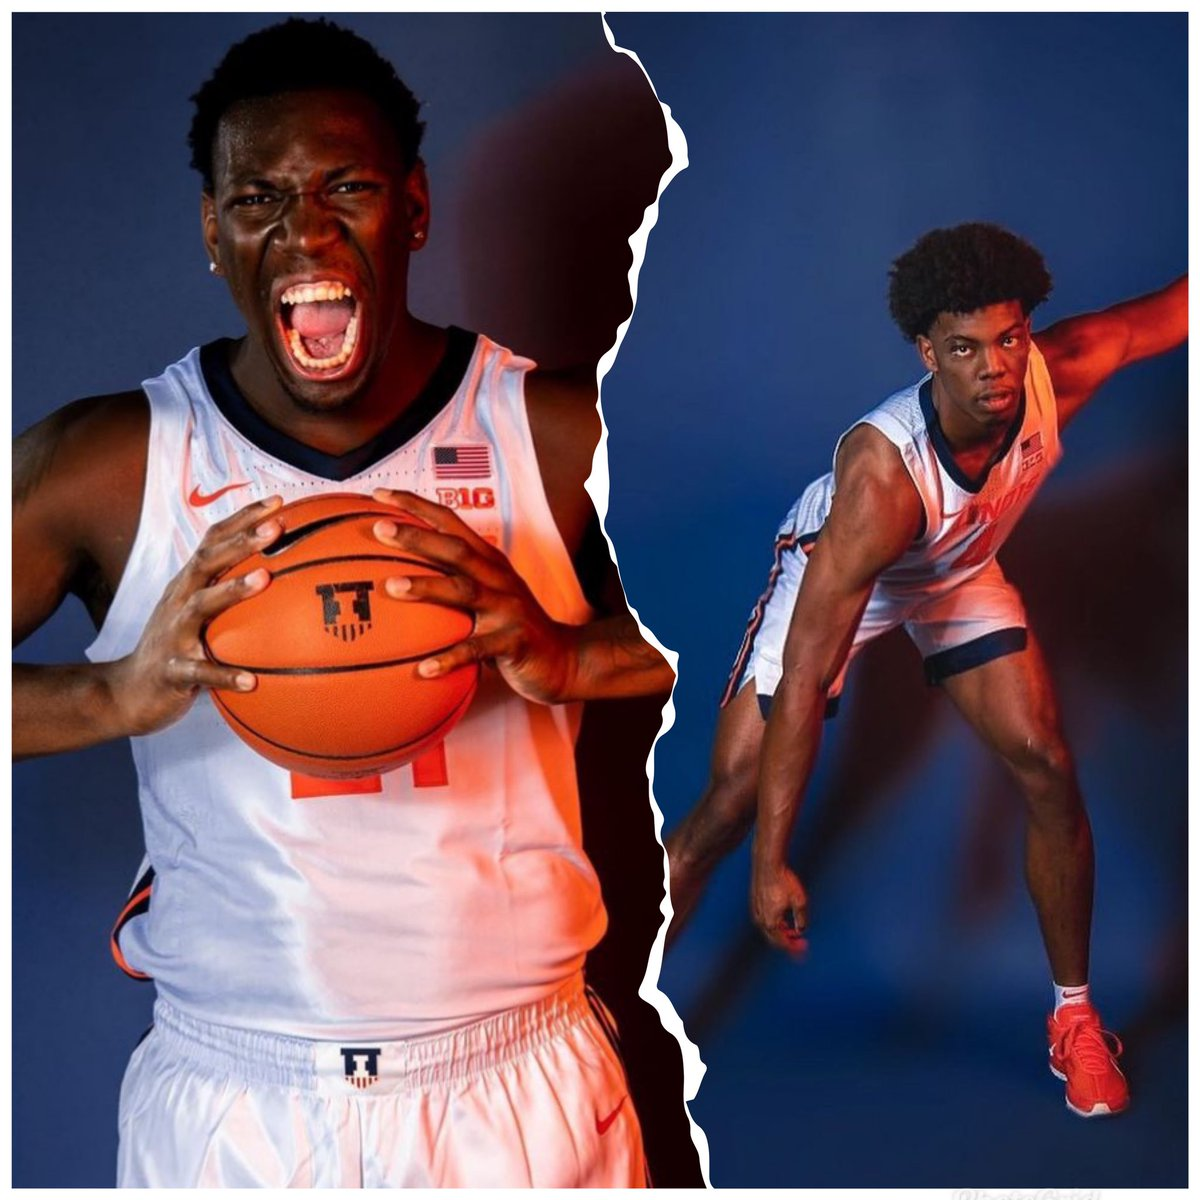 """🔶🔷Twin towers for 40 minutes; Kofi 7' 290 lbs; Omar 6'10 240 lbs with a 7' 5.5"""" wingspan that enables his shot-blocking and finishing at the rim, #tuffff."""